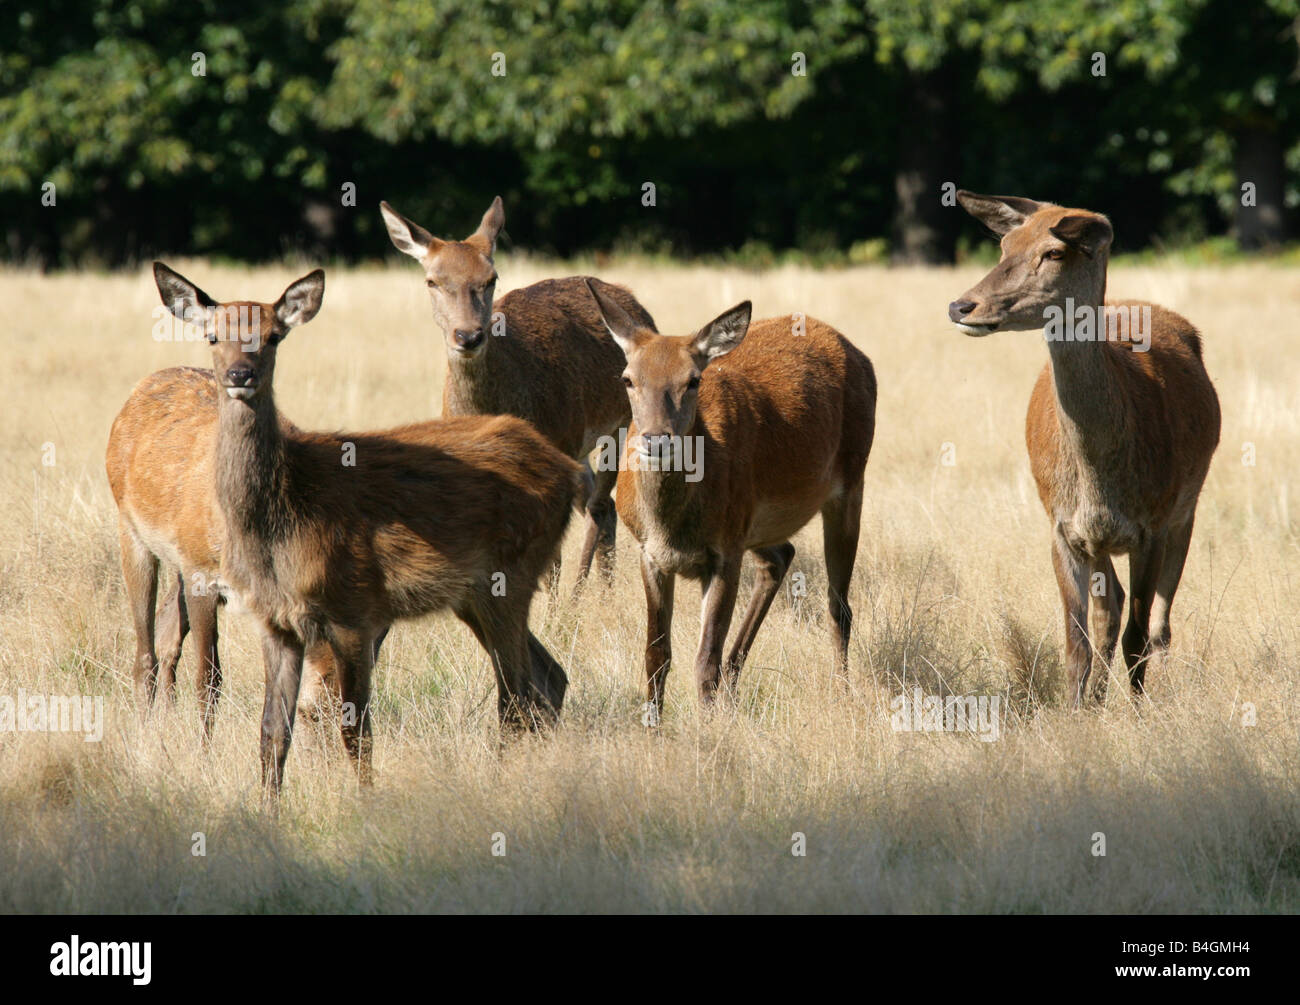 A Group of Five Female Red Deer, Cervus elaphus - Stock Image